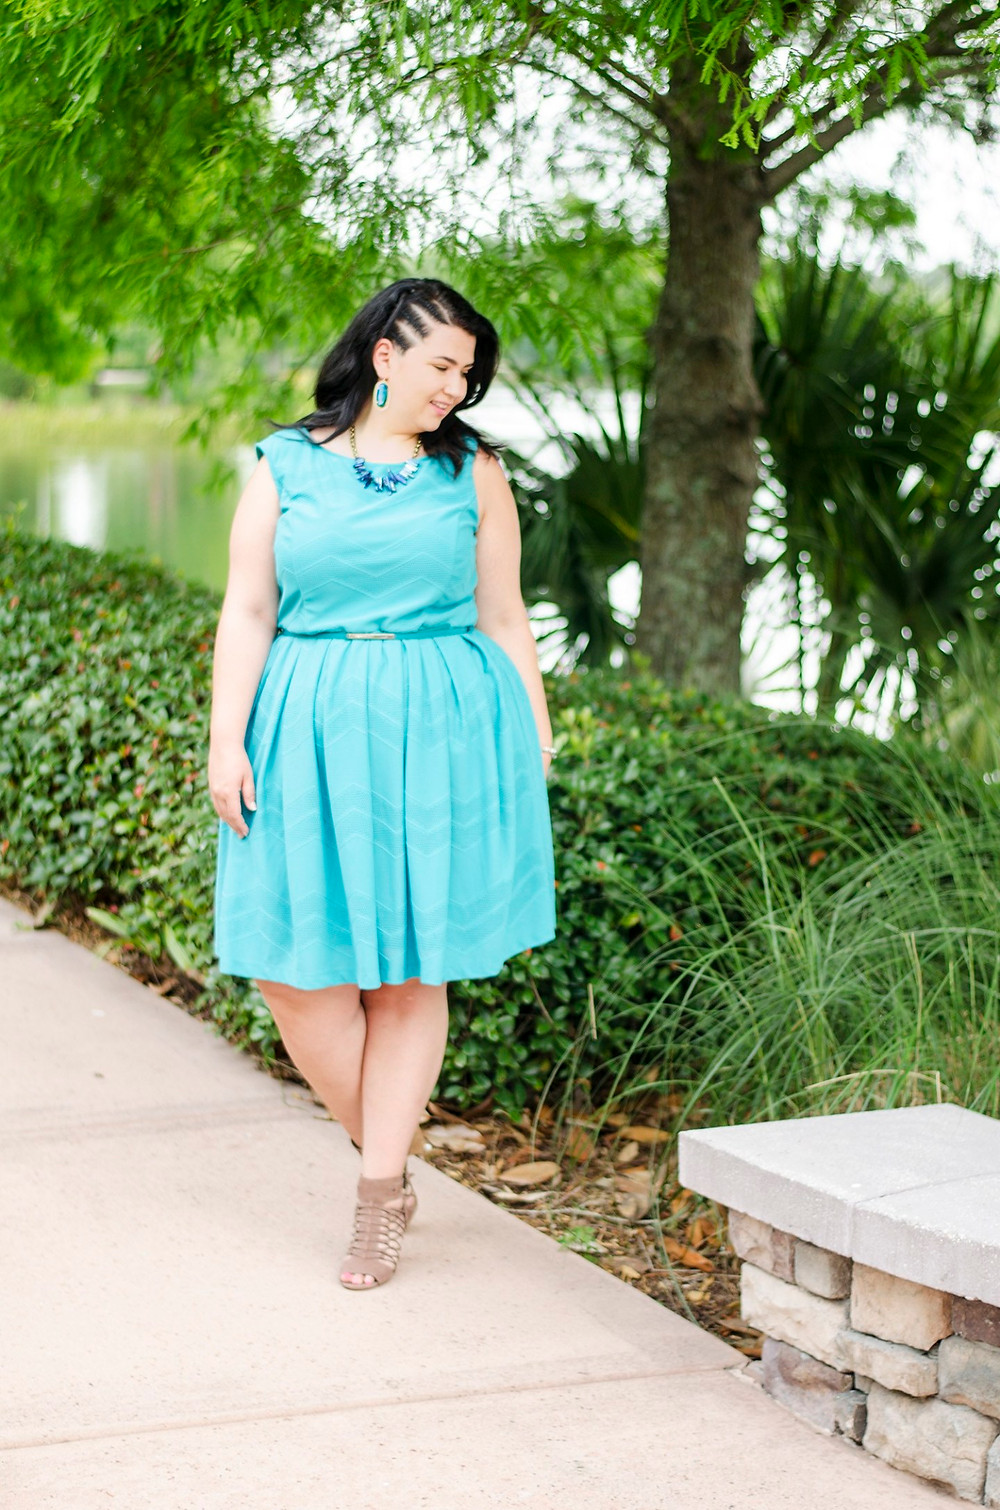 gwynnie bee ootd summer 2016 plus size fashion dress blue crystal coons sometimes glam